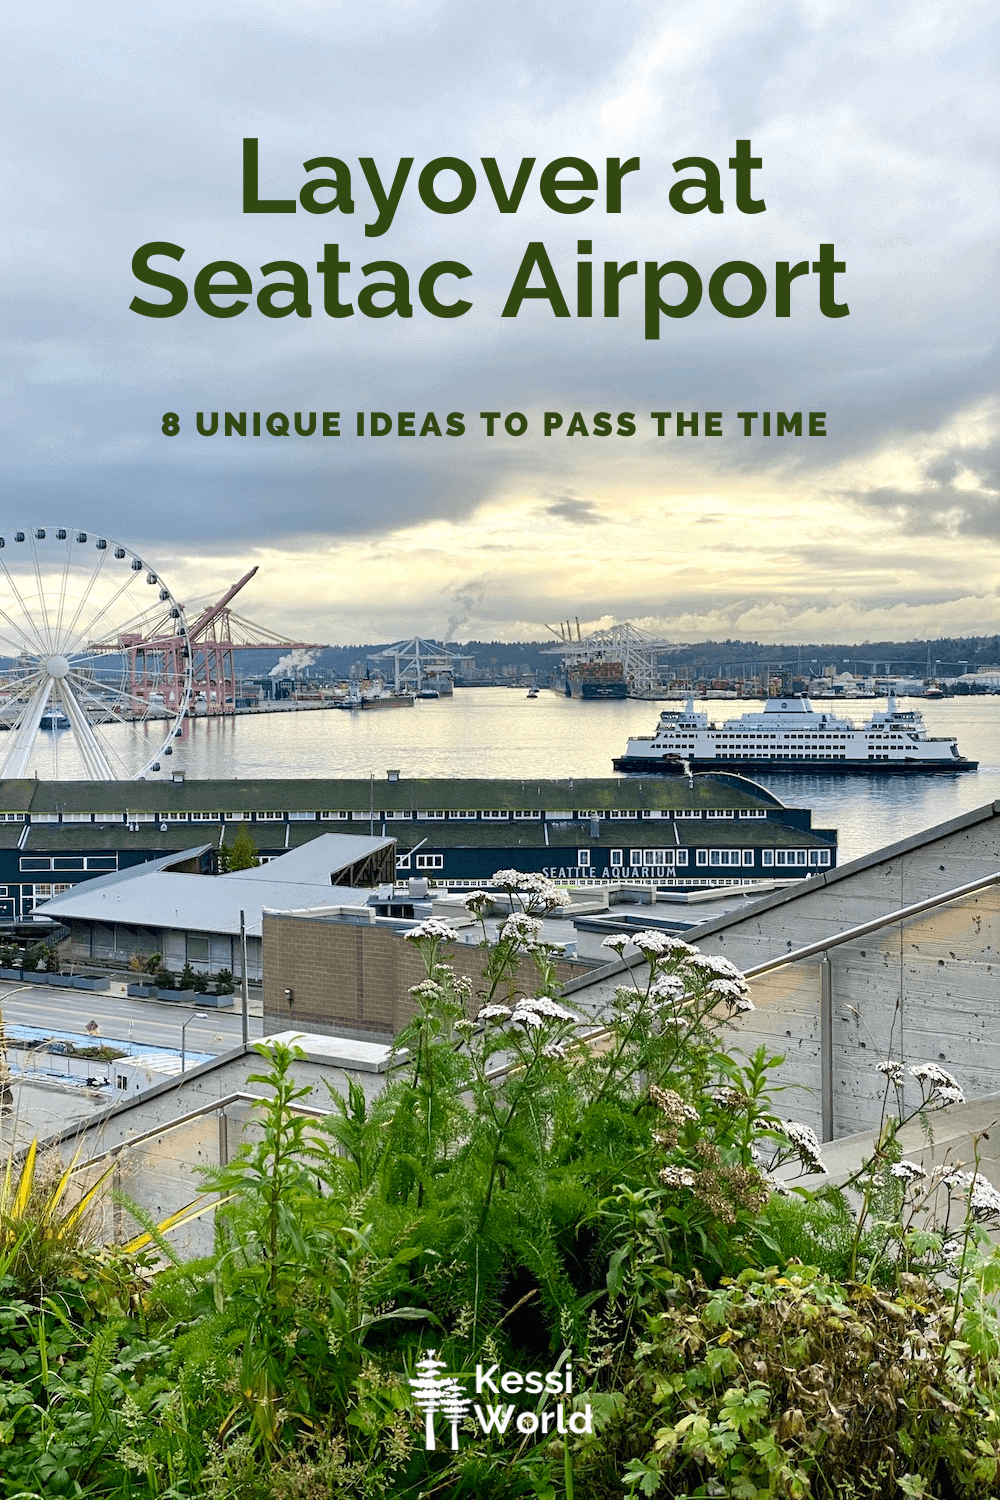 This Pinterest Pin highlights things to do with a layover at Seatac Airport.  In this scene there is the Seattle Great Wheel layered in by the Seattle Aquarium and a ferry gliding into port along the water.